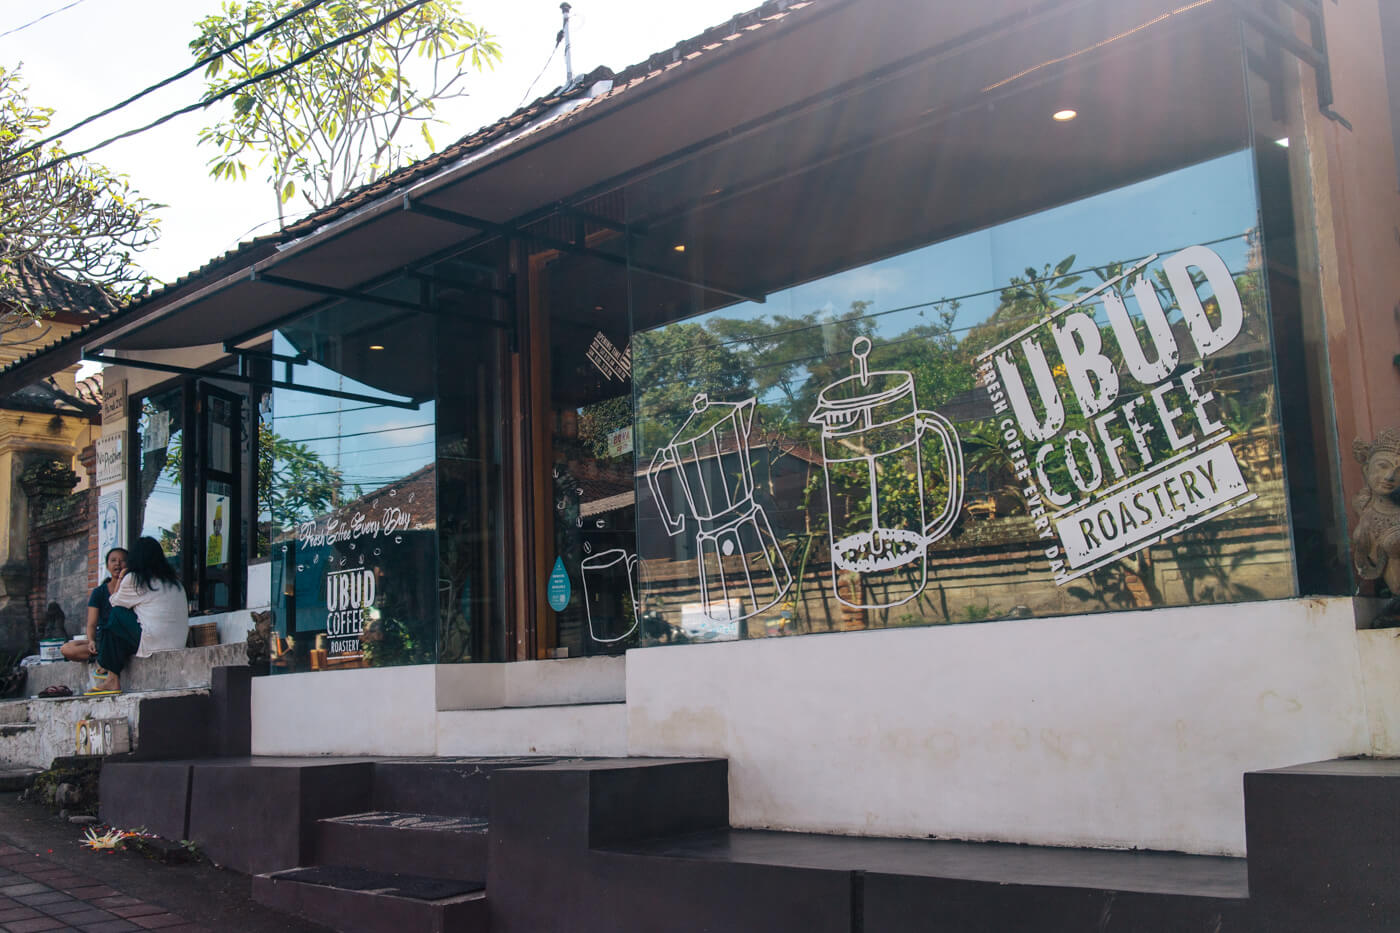 Ubud Coffee Roasteryの外観